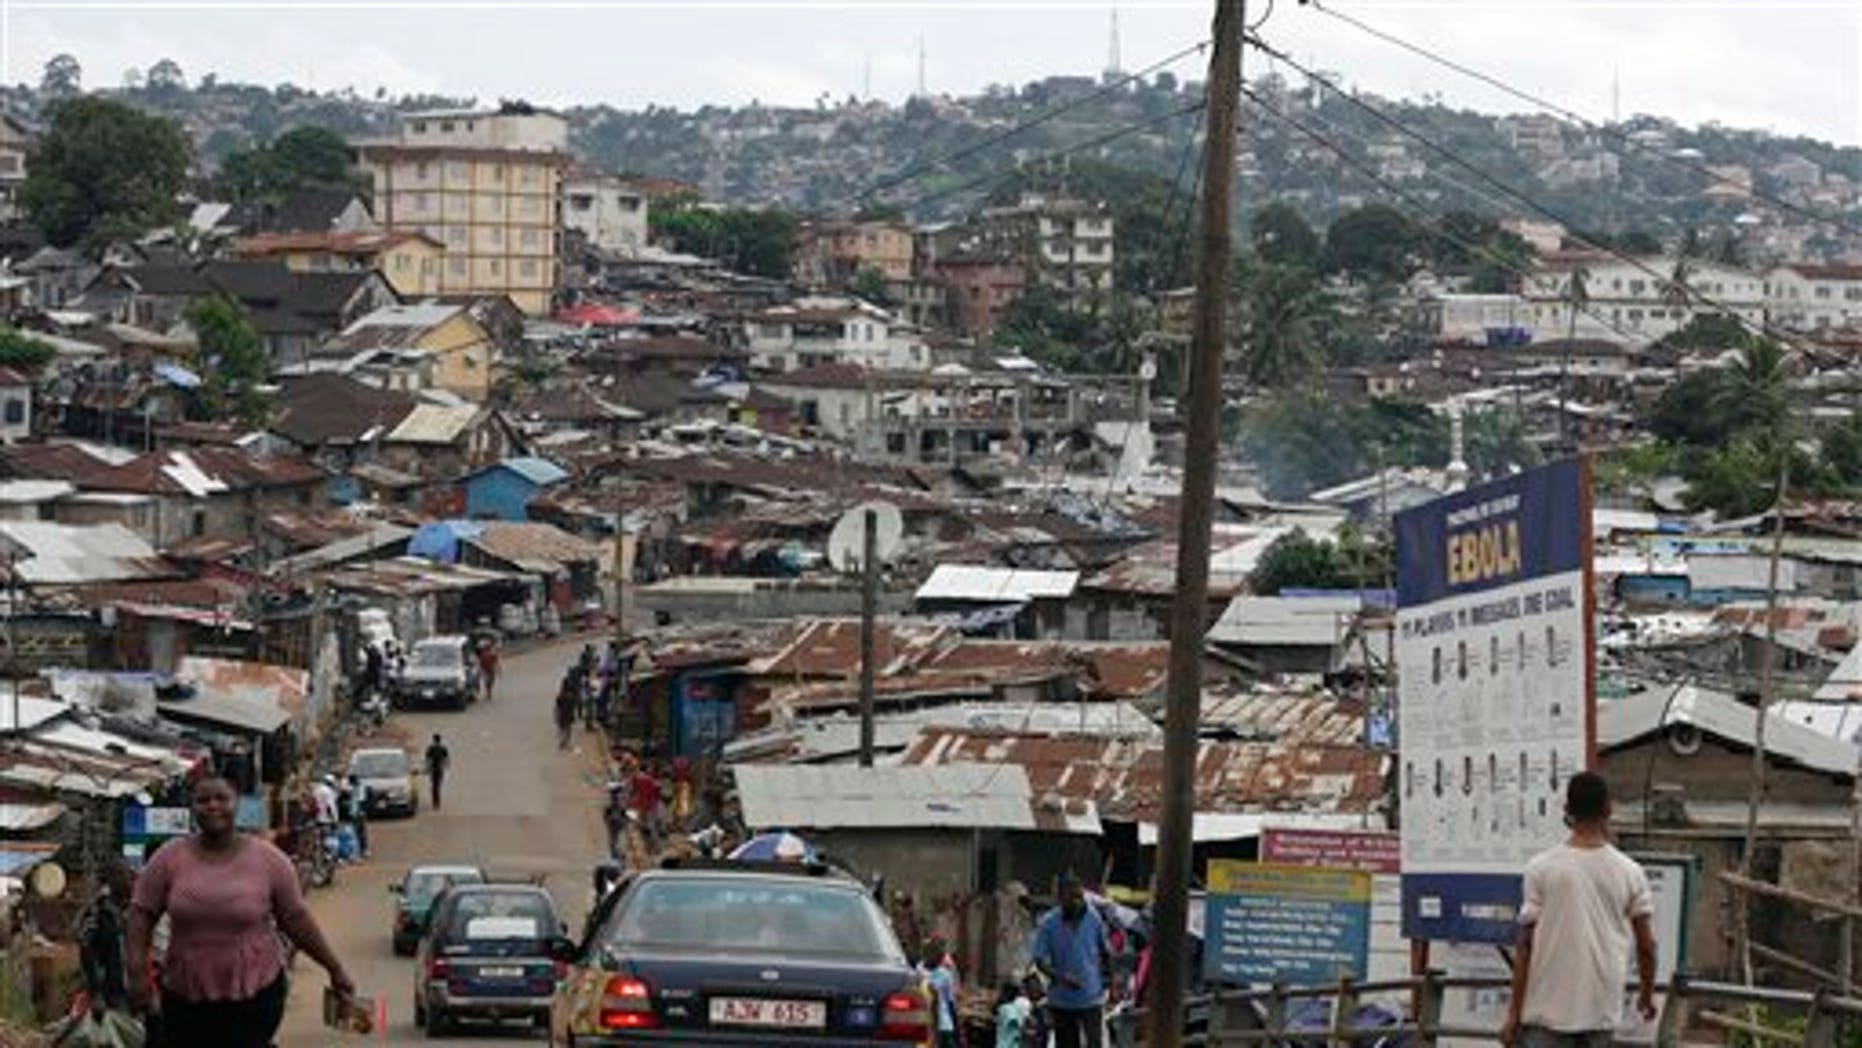 In this photo taken Thursday, Aug. 13, 2015, a billboard advises people how to keep free of Ebola, in a shanty town on the outskirts of Freetown, Sierra Leone, as people in the nearby village of Massessehbeh are finally released from Ebola quarantine, after Sierra Leone President Ernest Bai Koroma cut a tape to release the quarantine in the village. (AP Photo/Sunday Alamba)